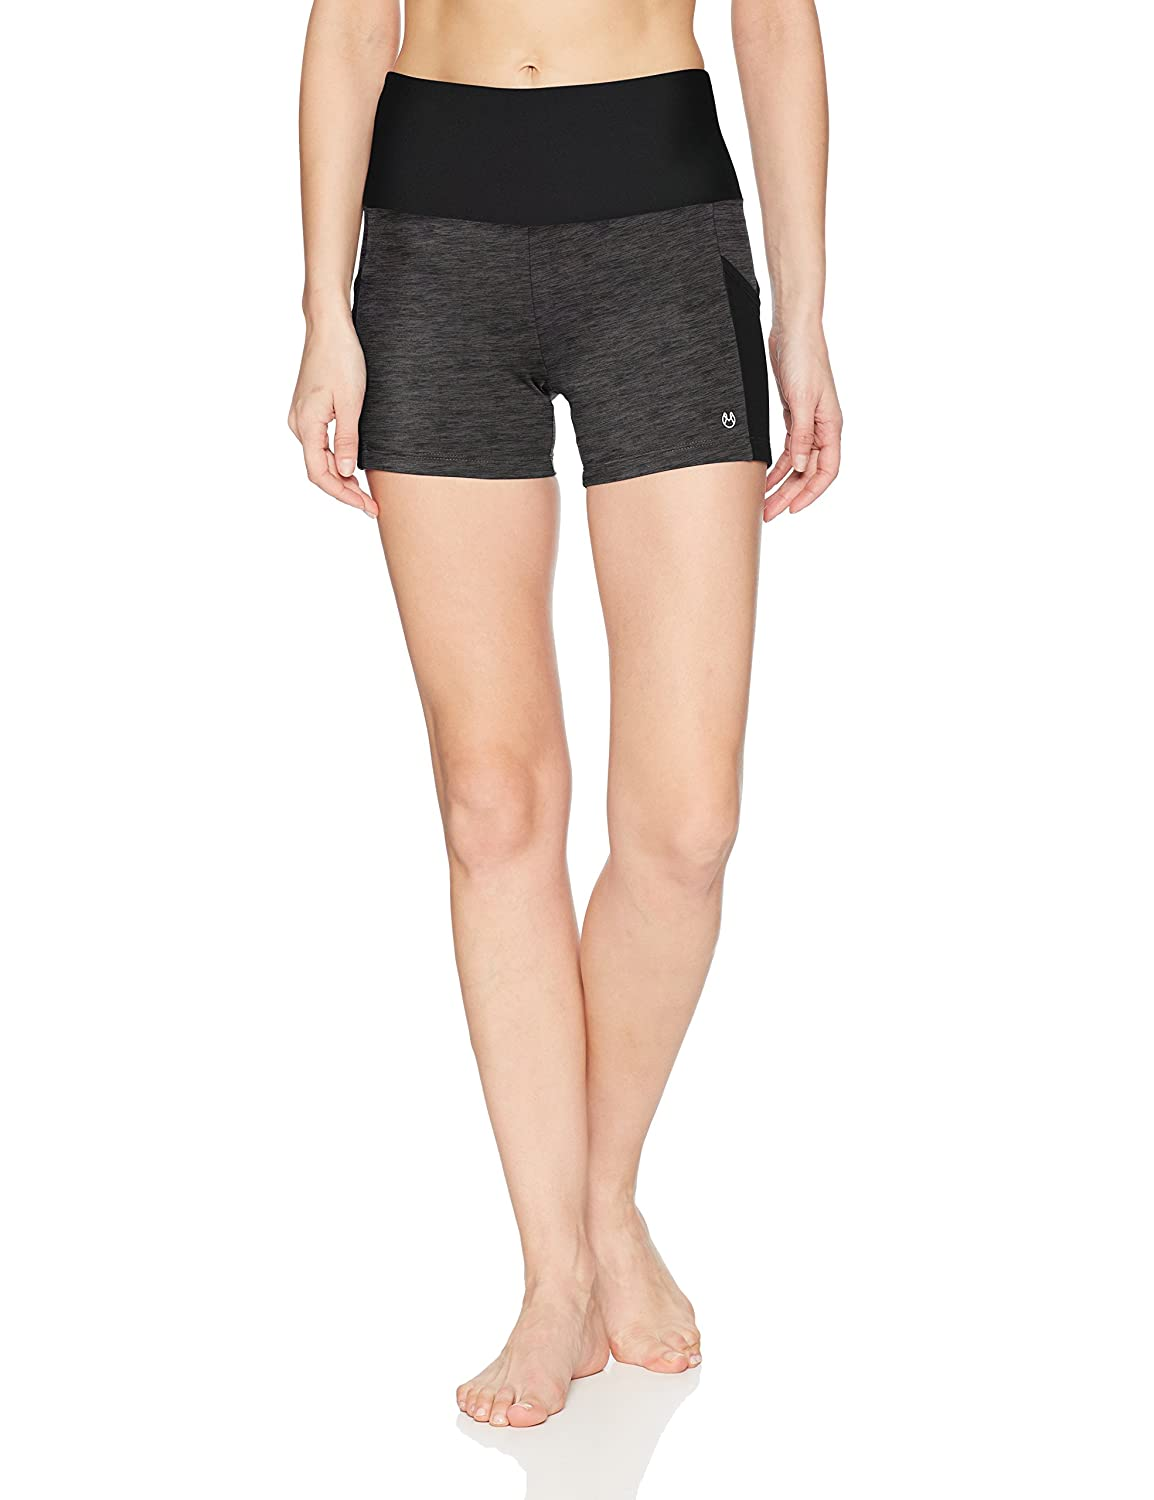 Maaji Womens Convert Tech Short